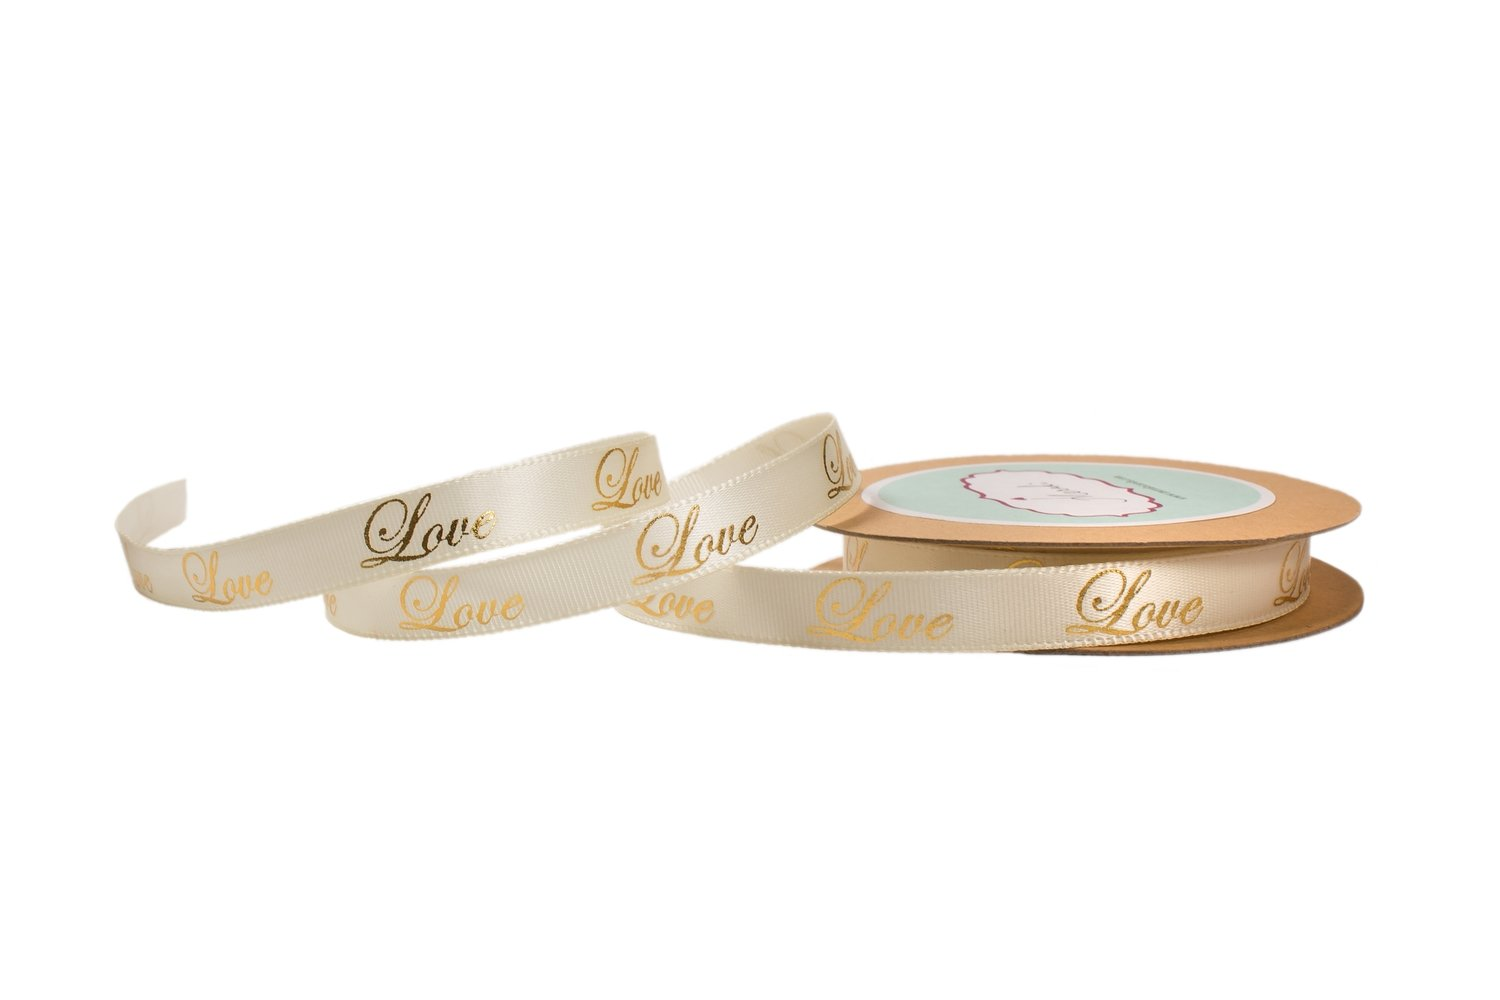 Off- white Satin Ribbon with Love printed in Gold